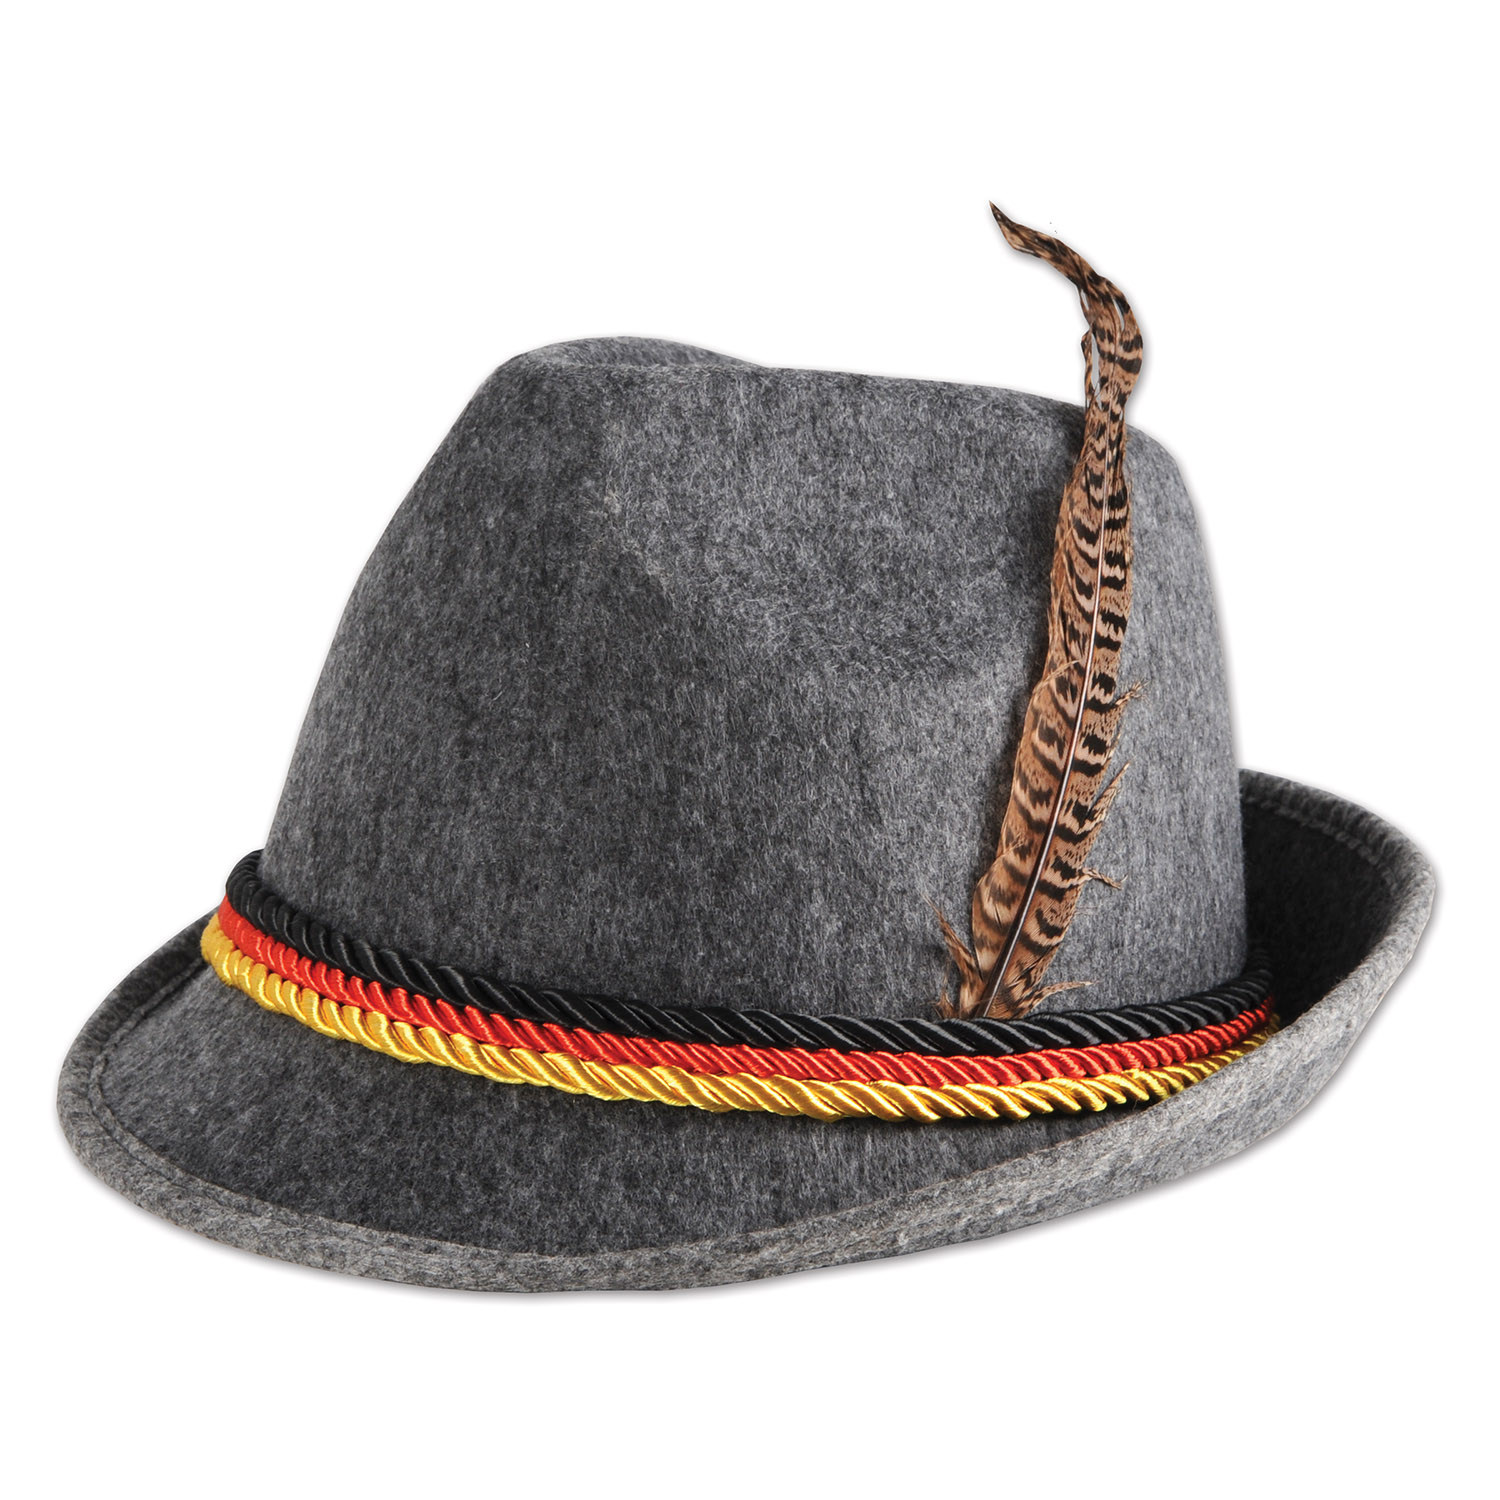 German Alpine Hat (Pack of 6) Alpine Hat, German Hat, Felt Hats, Oktoberfest favors, Party Favors, Inexpensive party supplies, Wholesale party goods